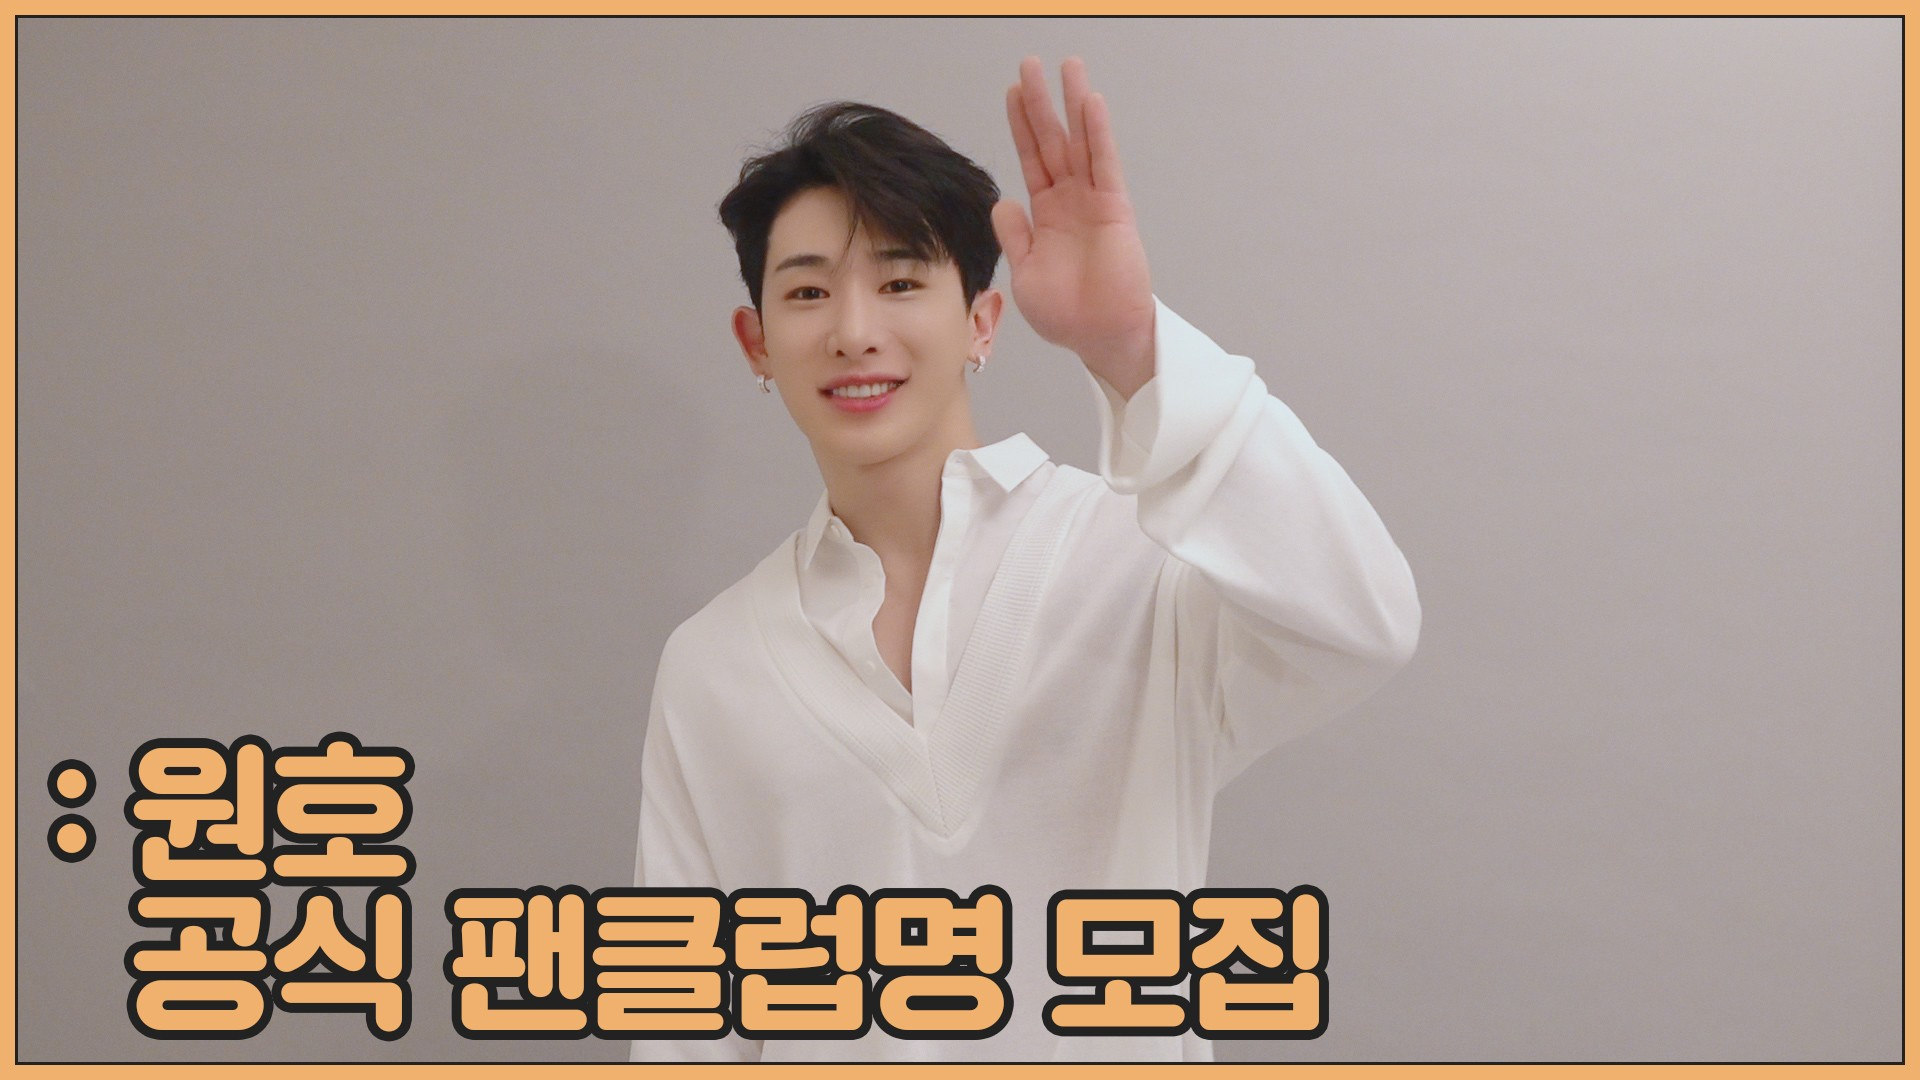 [Special Clip] 원호 (WONHO) - 공식 팬클럽명 모집 (Official Fan Club Name Recruitment)